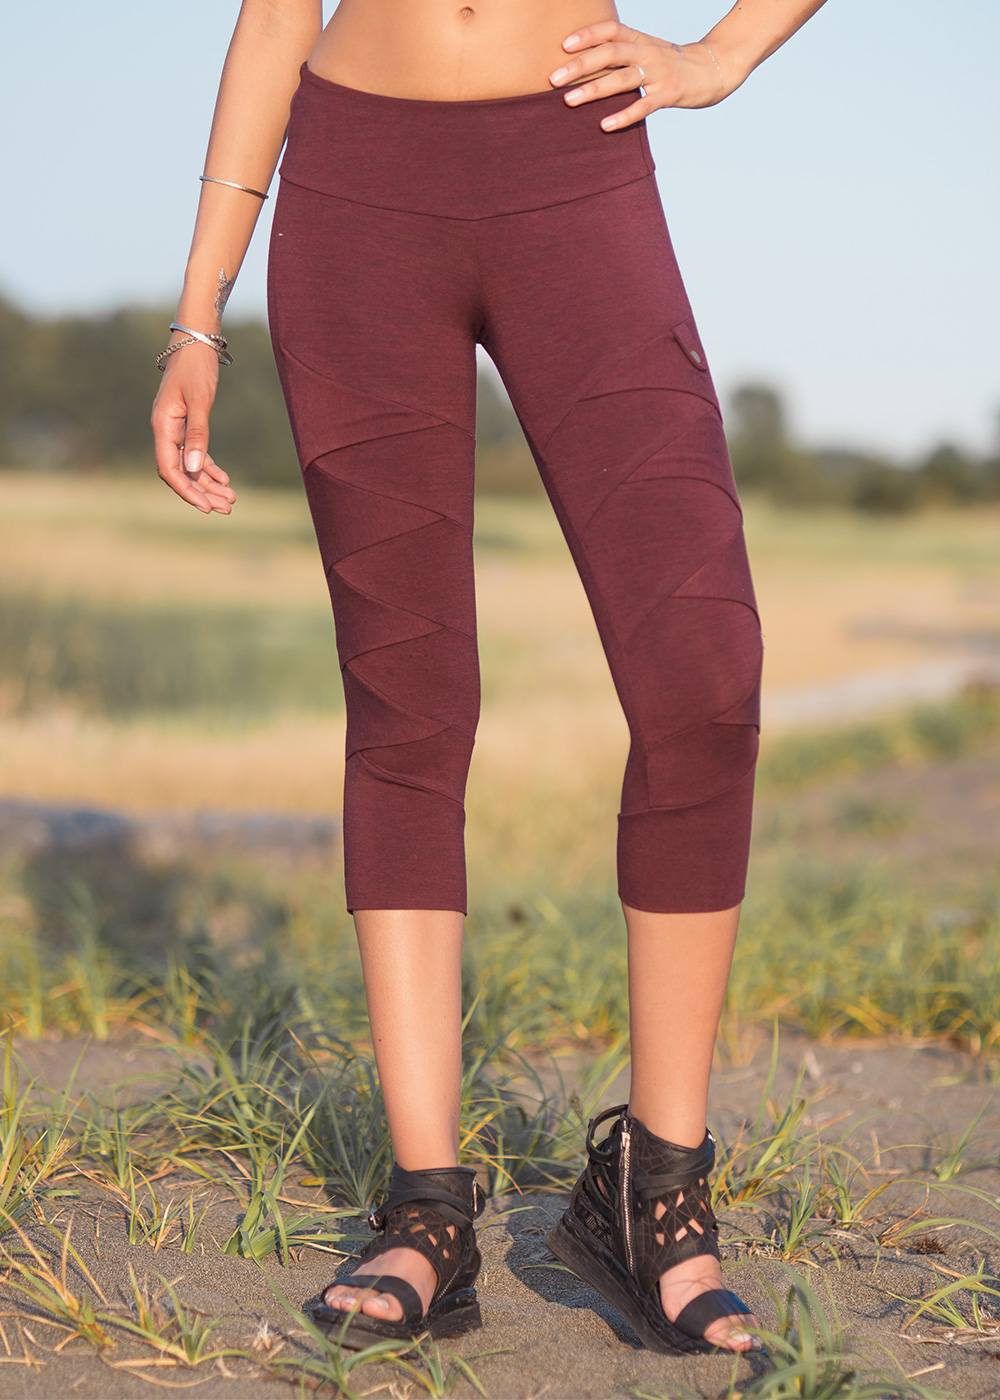 948ed3021dec99 Albacore 3/4 Leggings in Organic Cotton & Bamboo - Nomads Hemp Wear